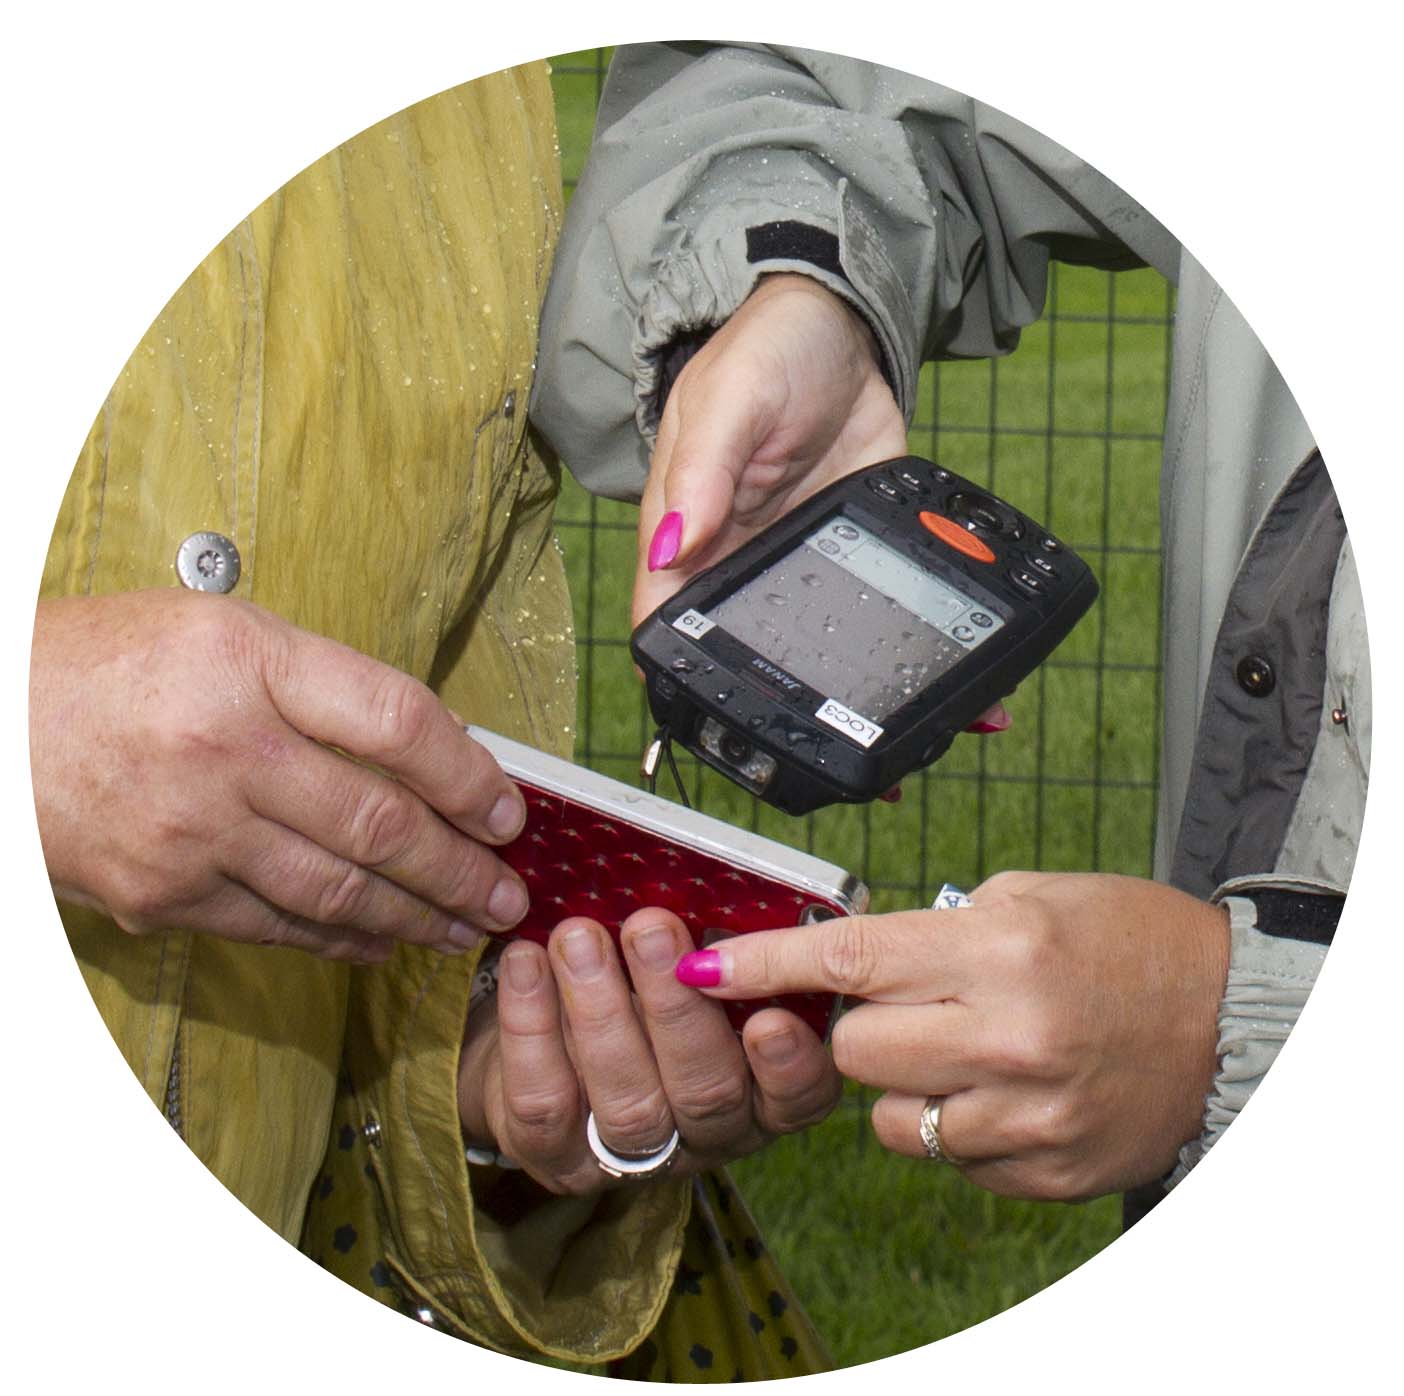 reliable rugged wireless ticket barcode scanners |  Book Now >